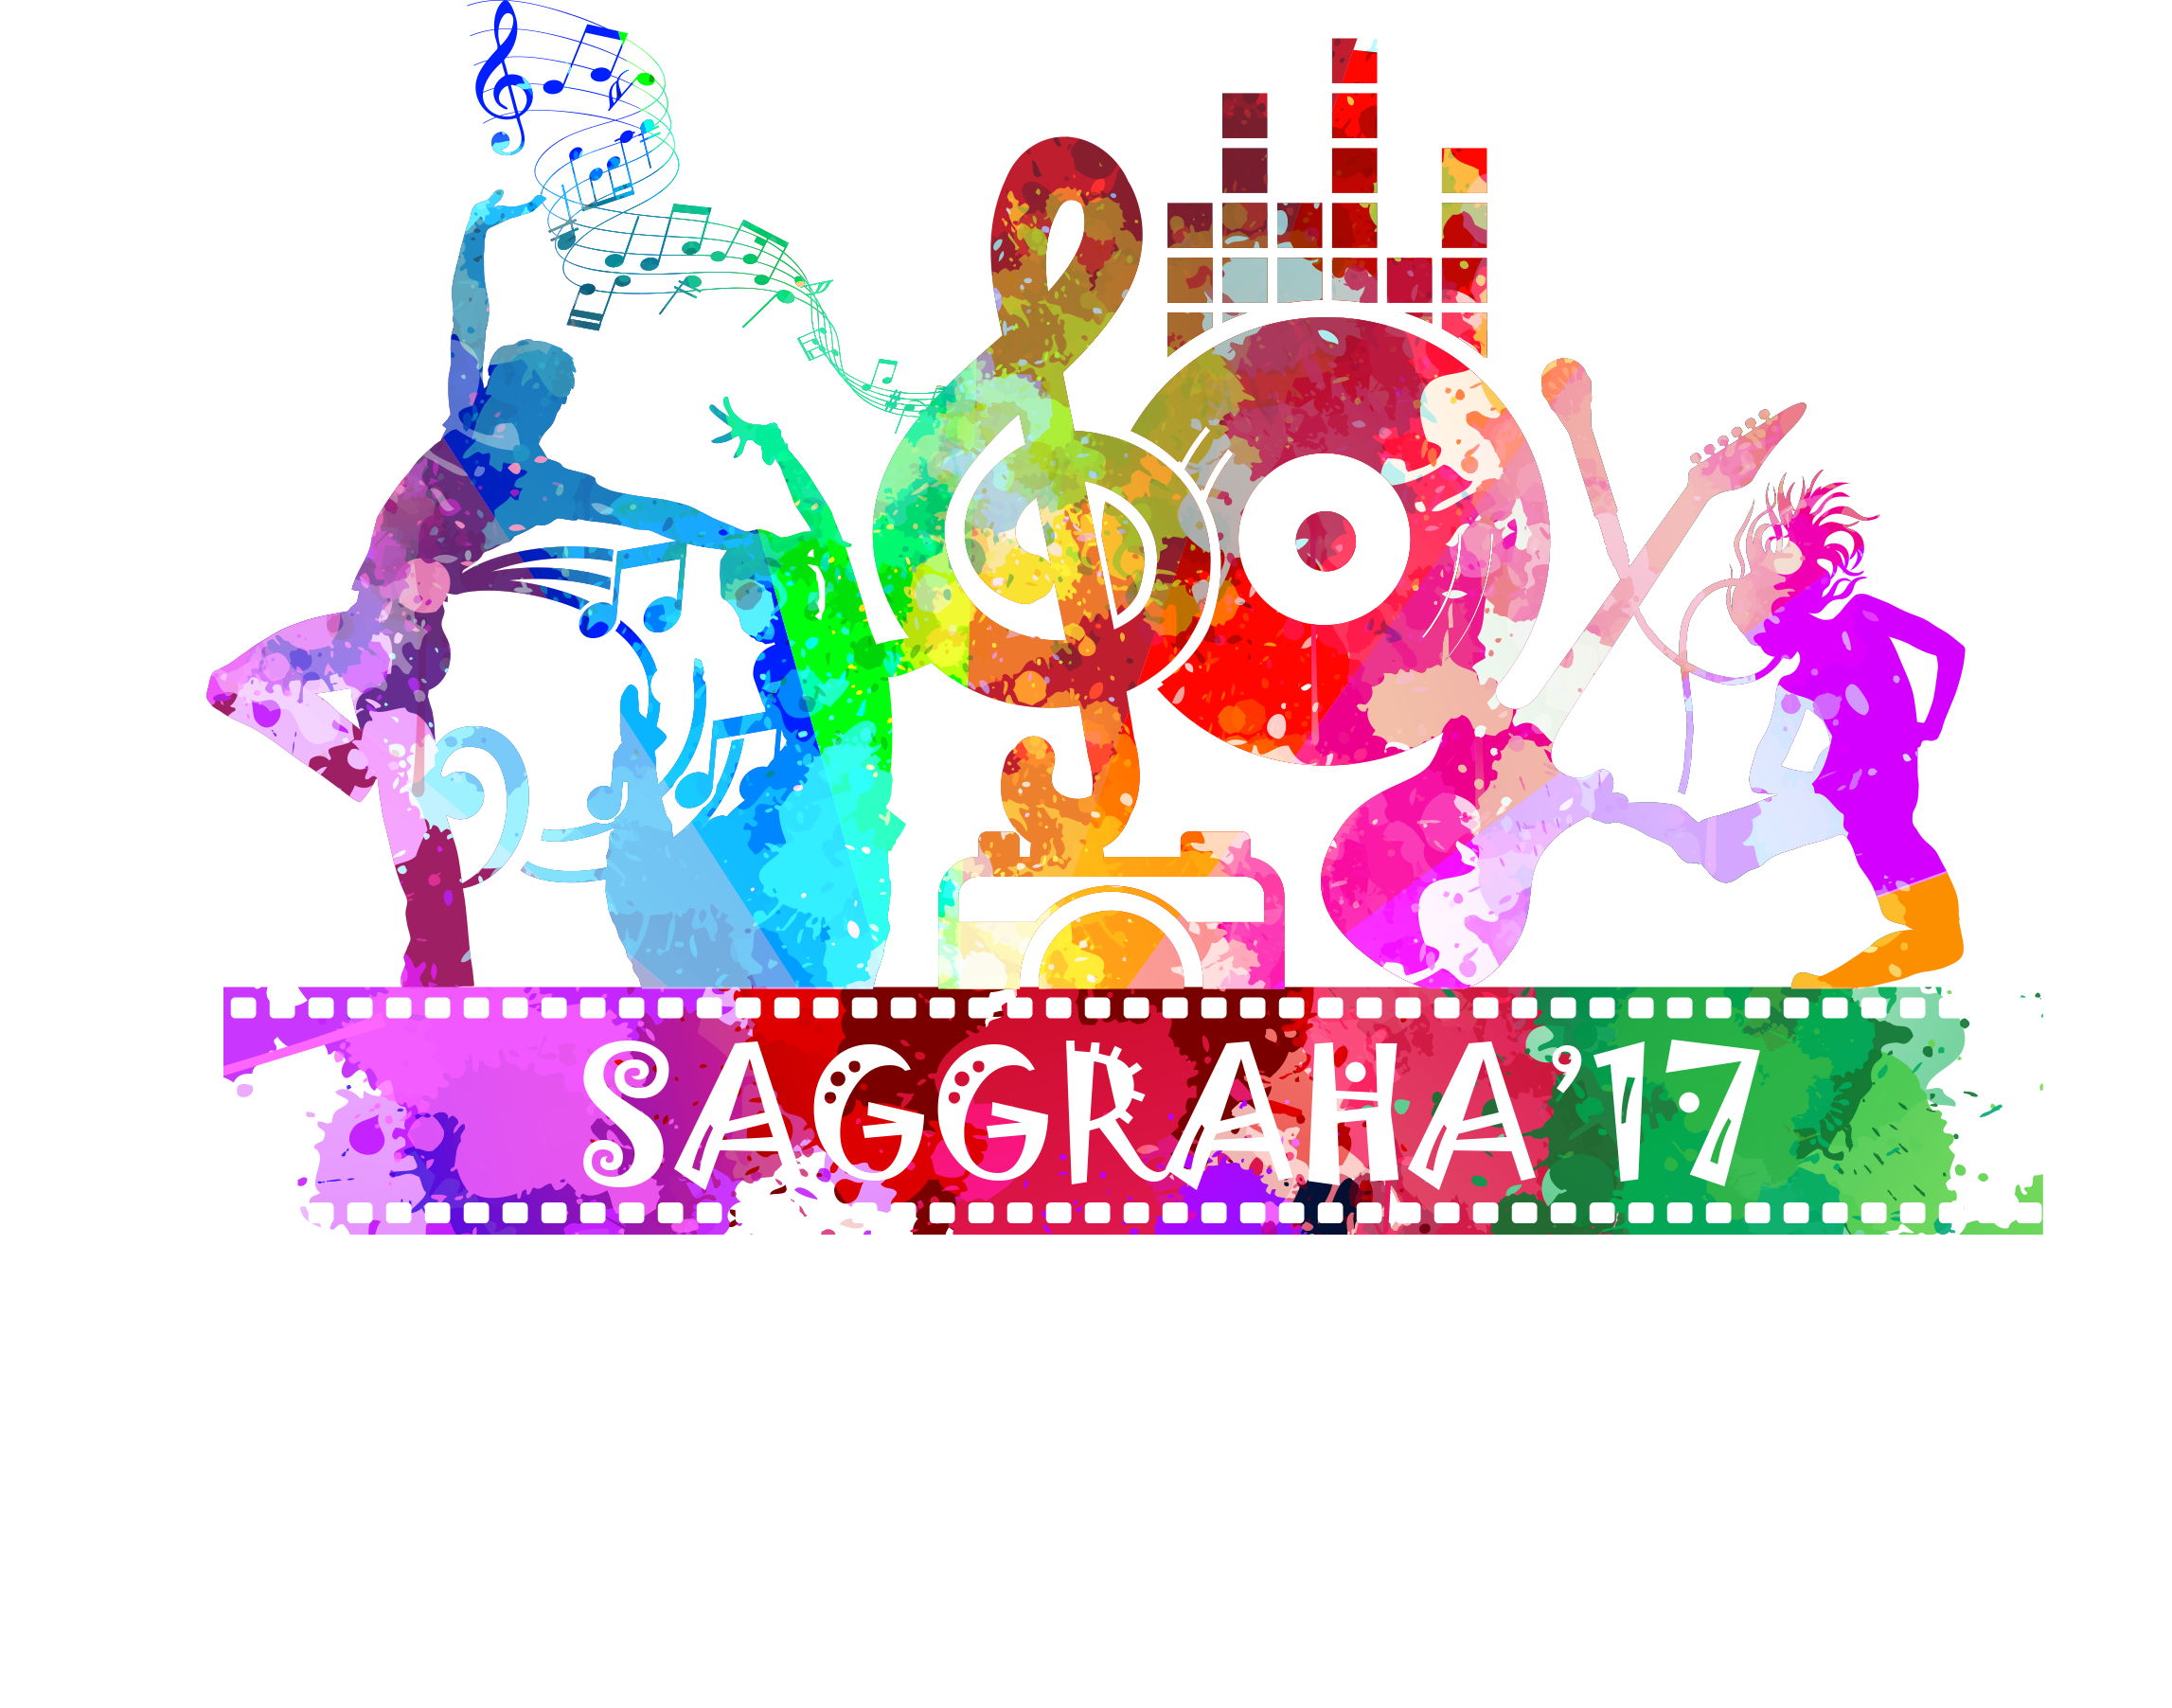 Saggraha 17, Ilahia School of Science and Technology.